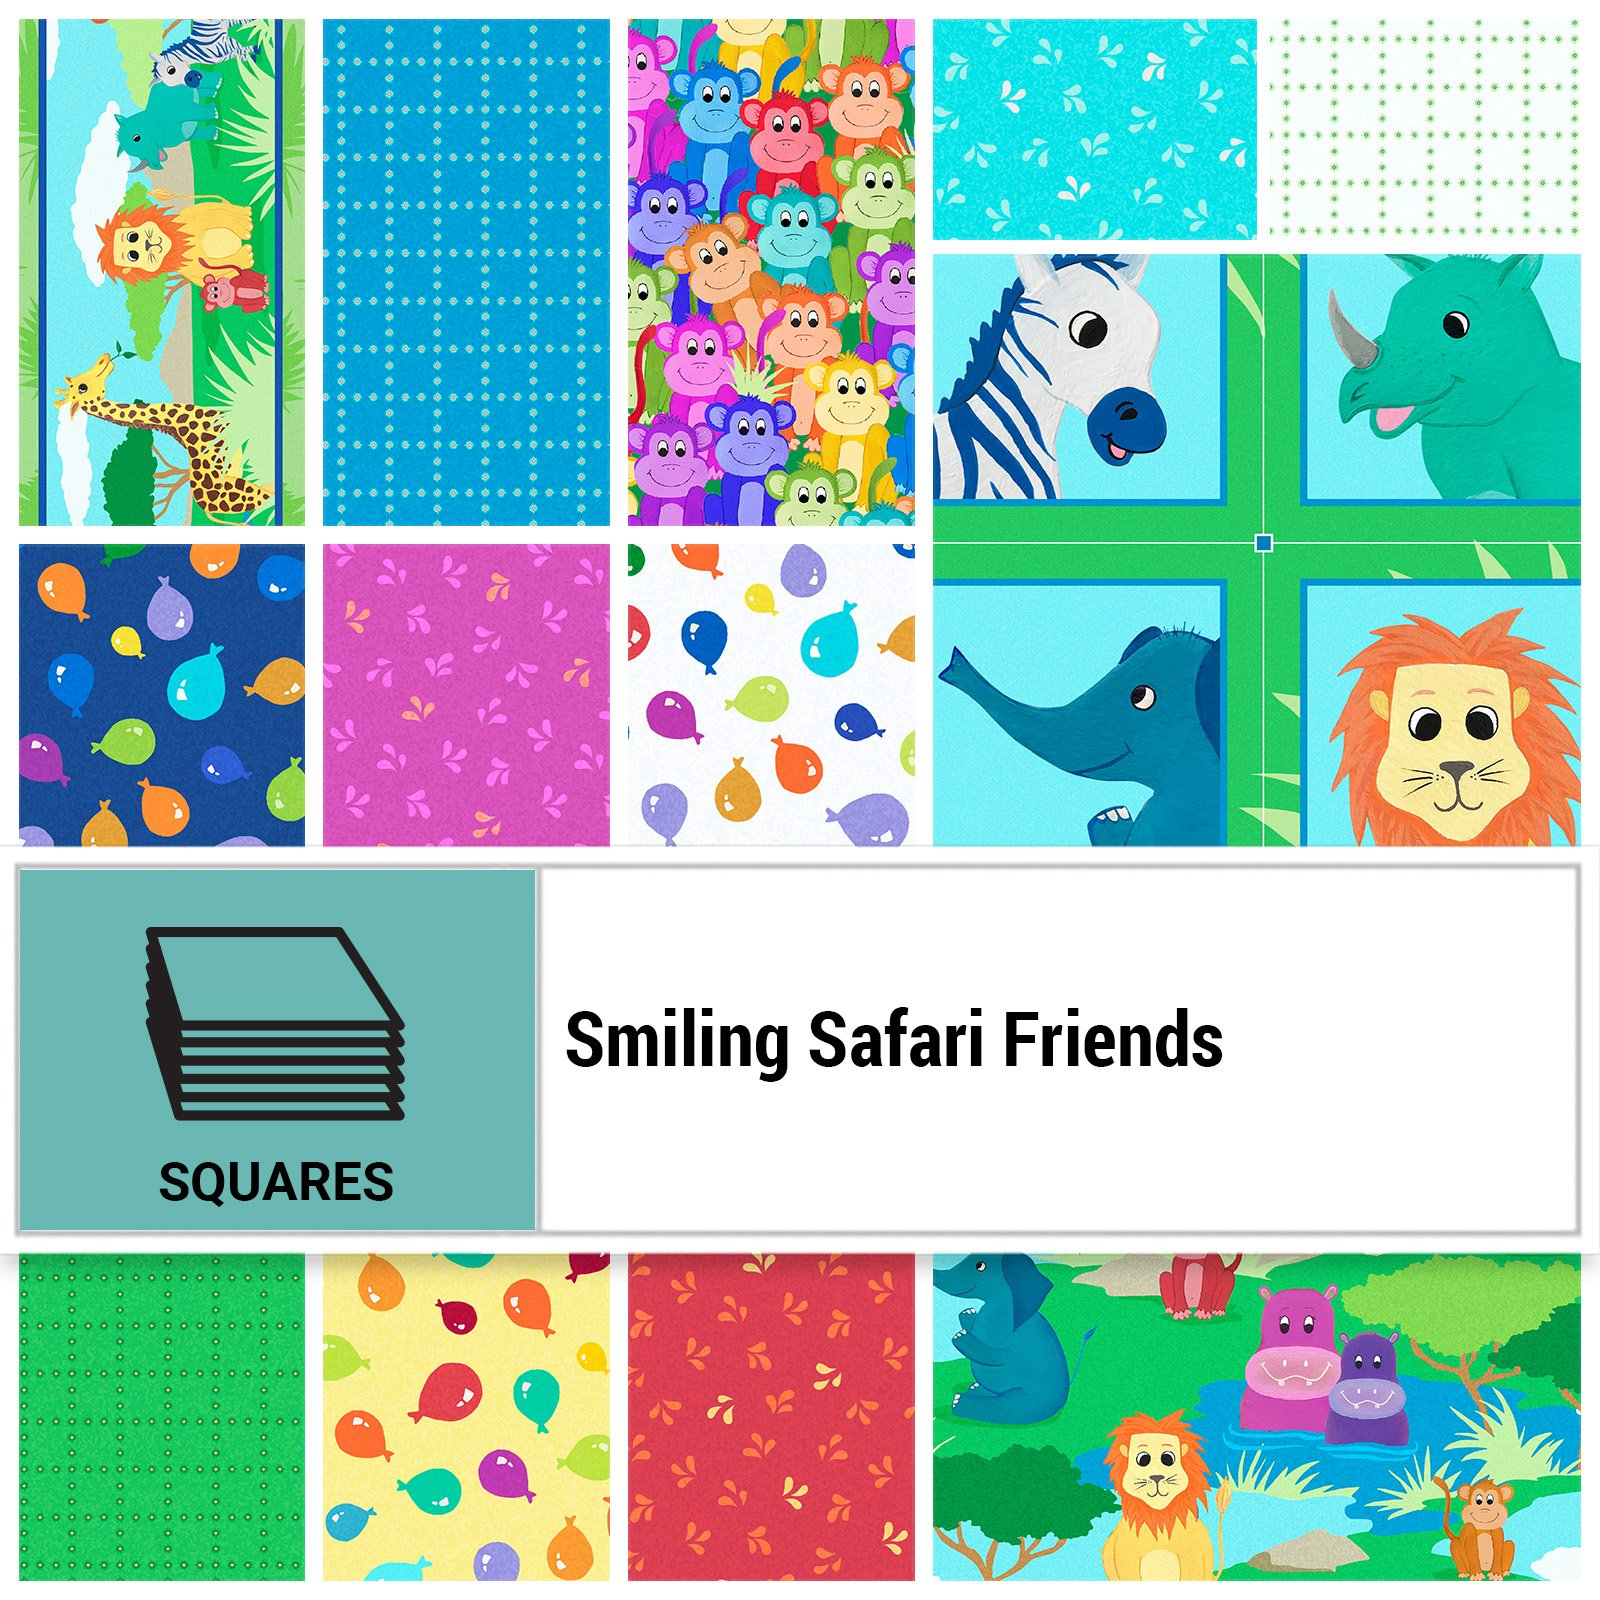 SSFR-10X10 - SMILING SAFARI FRIENDS 10 SQUARES BY P&B BOUTIQUE 42PCS - ARRIVING IN SEPTEMBER 2021